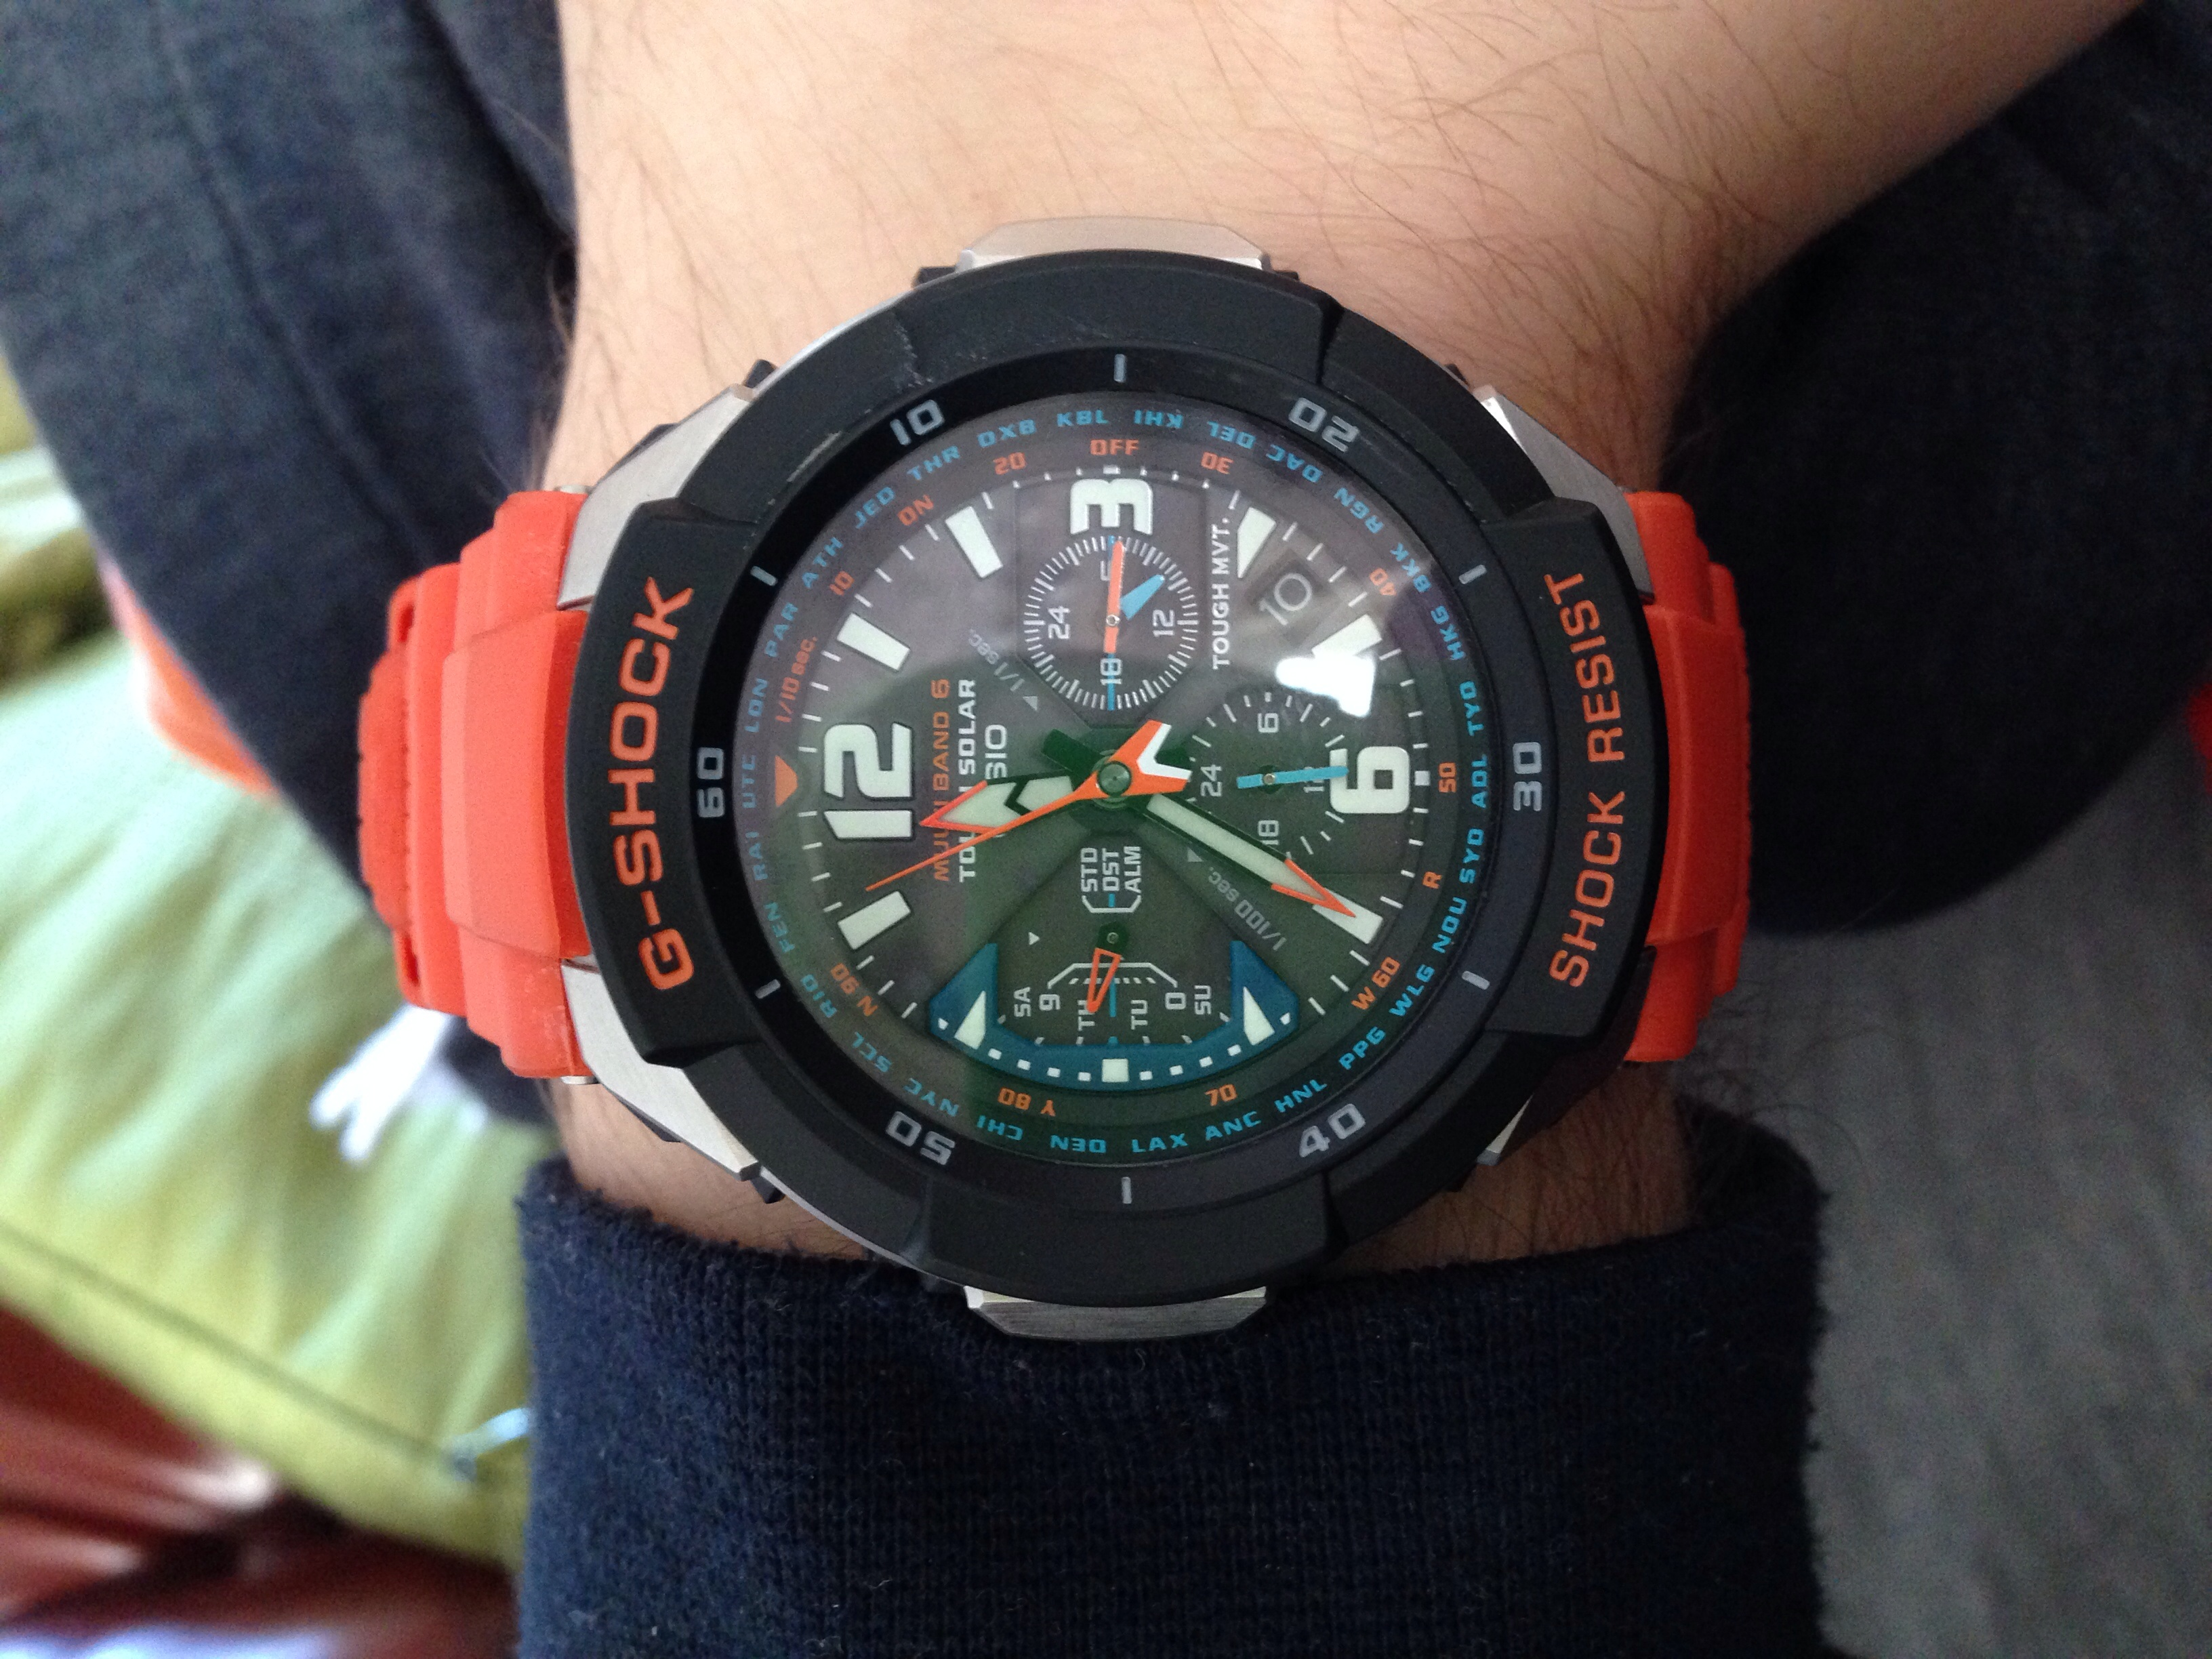 Gents Casio G Shock Gravity Defier Alarm Chronograph Watch Gw 3000m Edifice Efr546bkg1av 4aer